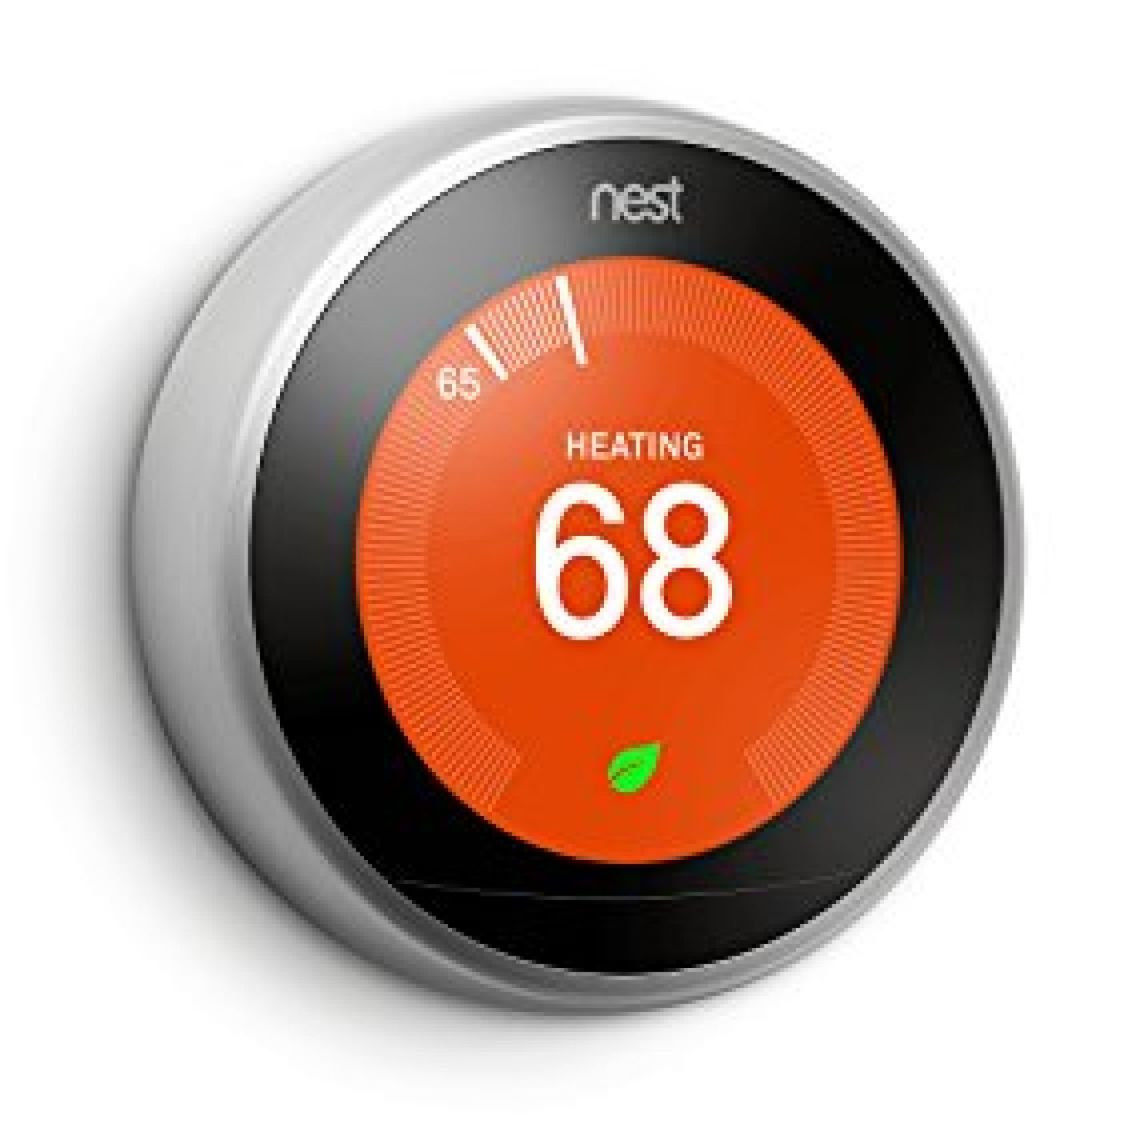 Nest (T3007ES) Learning Thermostat, Easy Temperature Control for Every Room in Your House, Stainless Steel (Third Generation), Works with Alexa - - Amazon.com